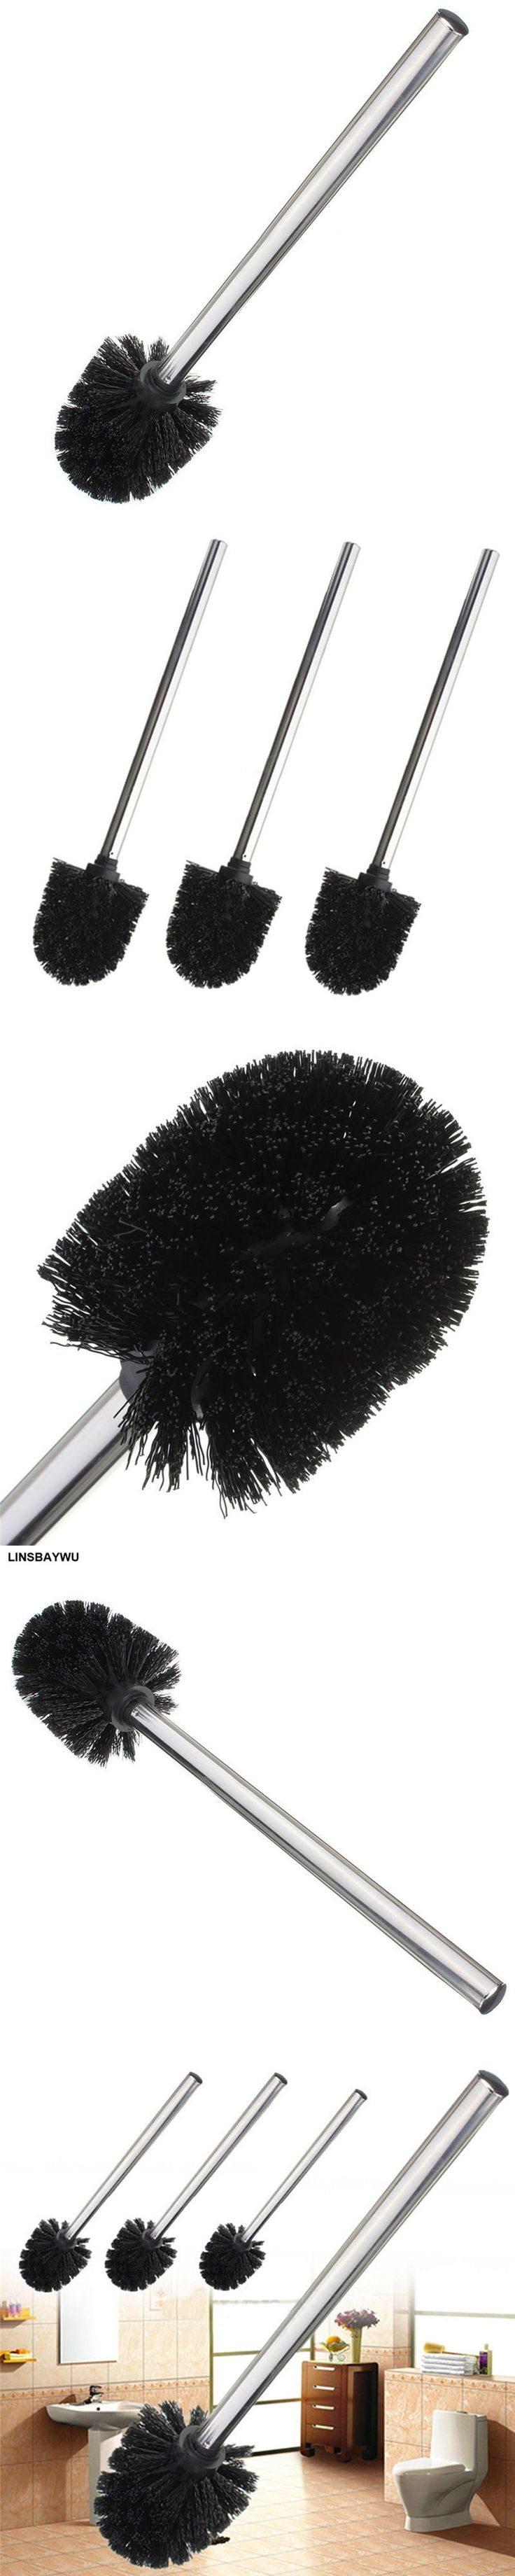 1PC  Replacement Stainless Steel WC Bathroom Cleaning Toilet Brush Black Head Holders